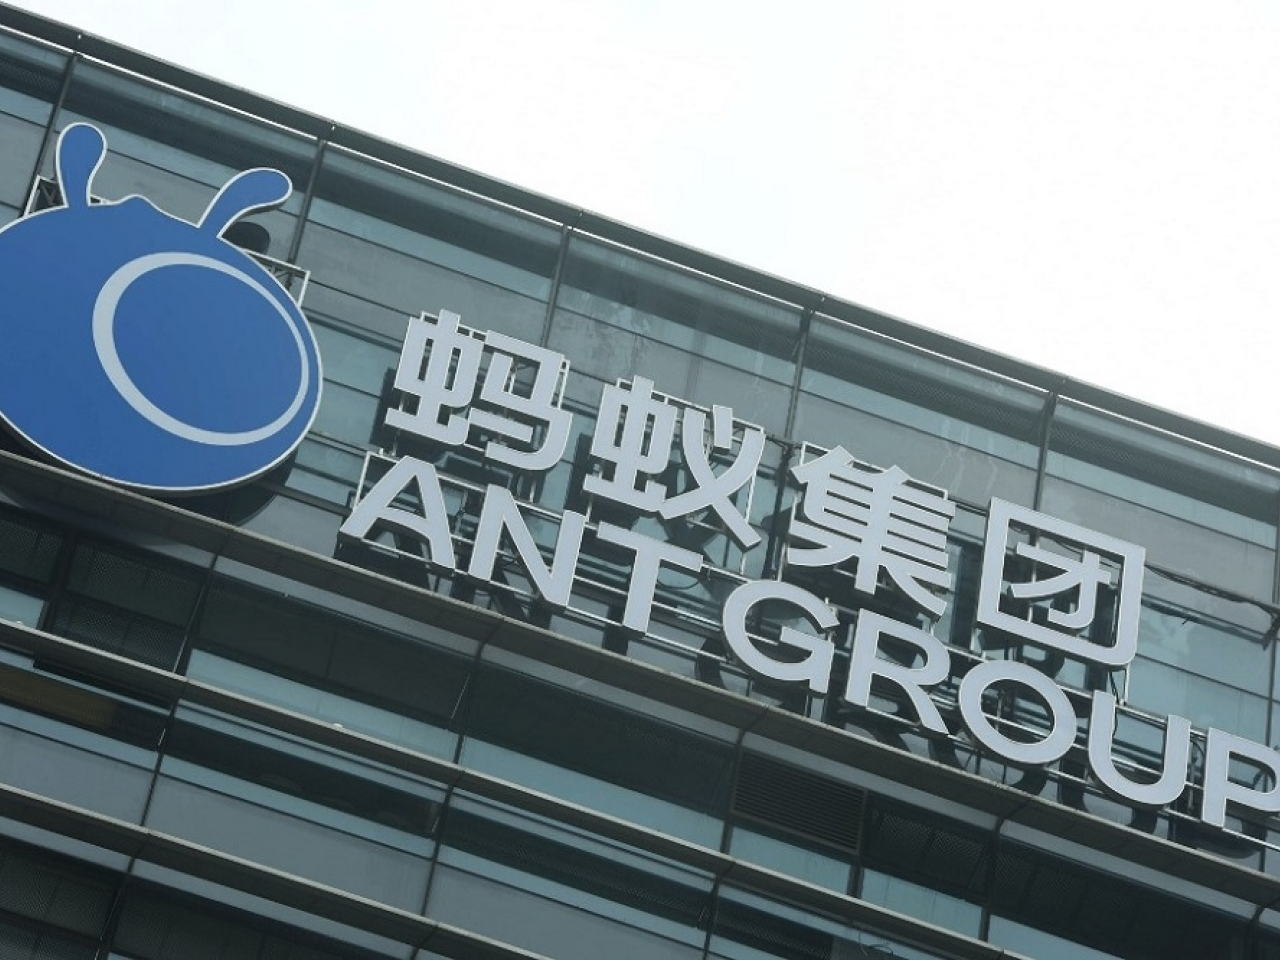 China greenlights Ant Group's IPO on STAR market